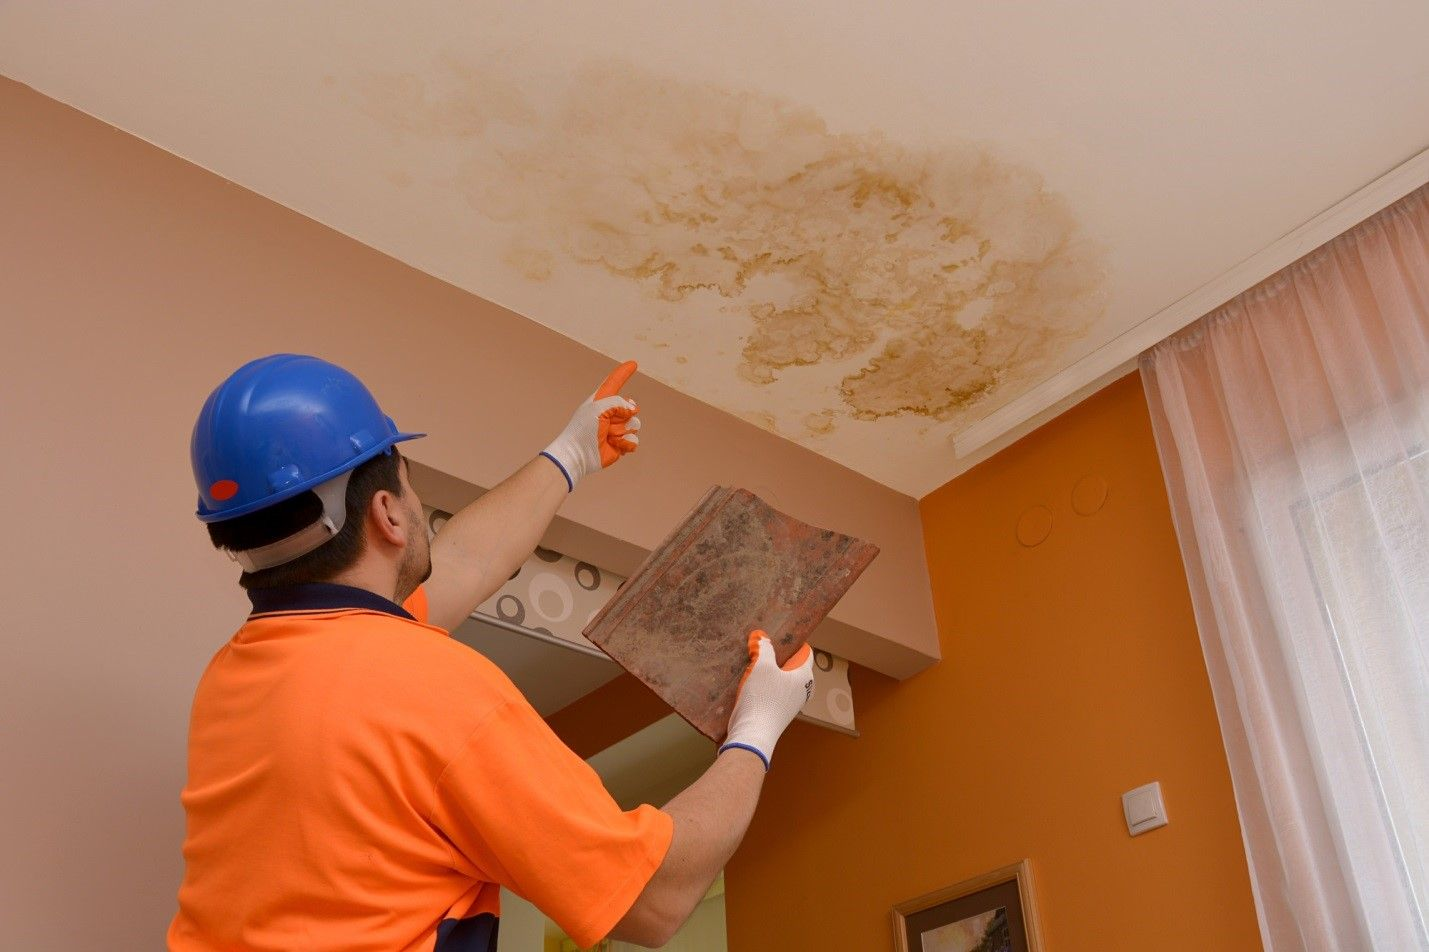 Finding A Roof Leak 5 Tips For Homeowners On Detecting Roof Damage Di 2020 Teknologi